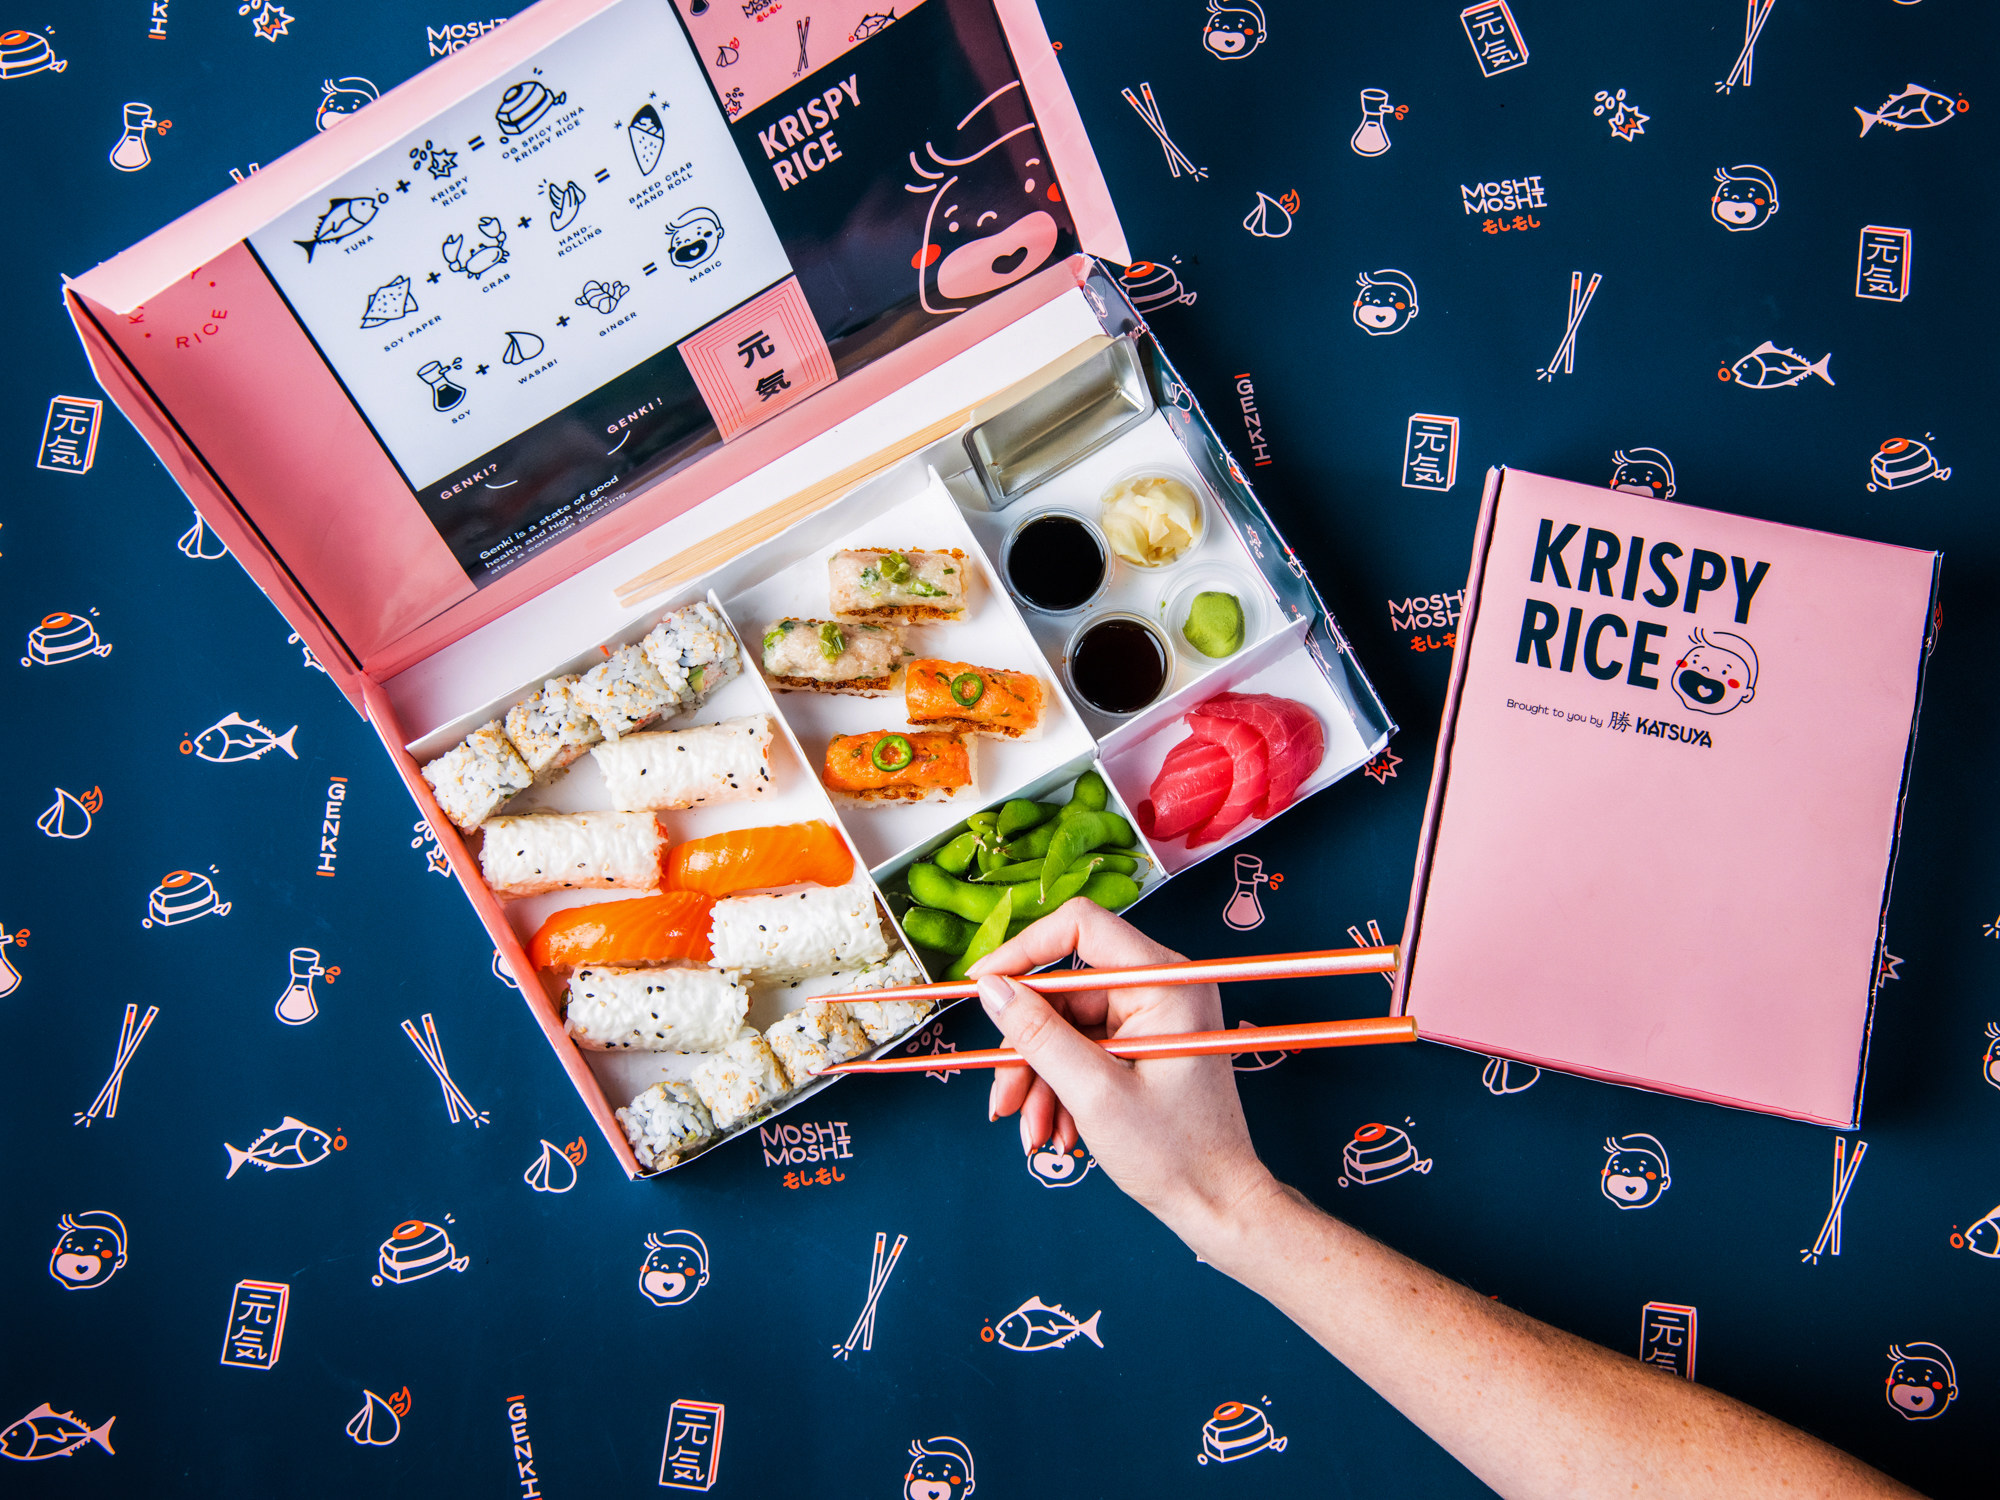 C3 Launches Delivery-Only Sushi Concept, Plans to Expand to Major Metro Areas Across U.S.